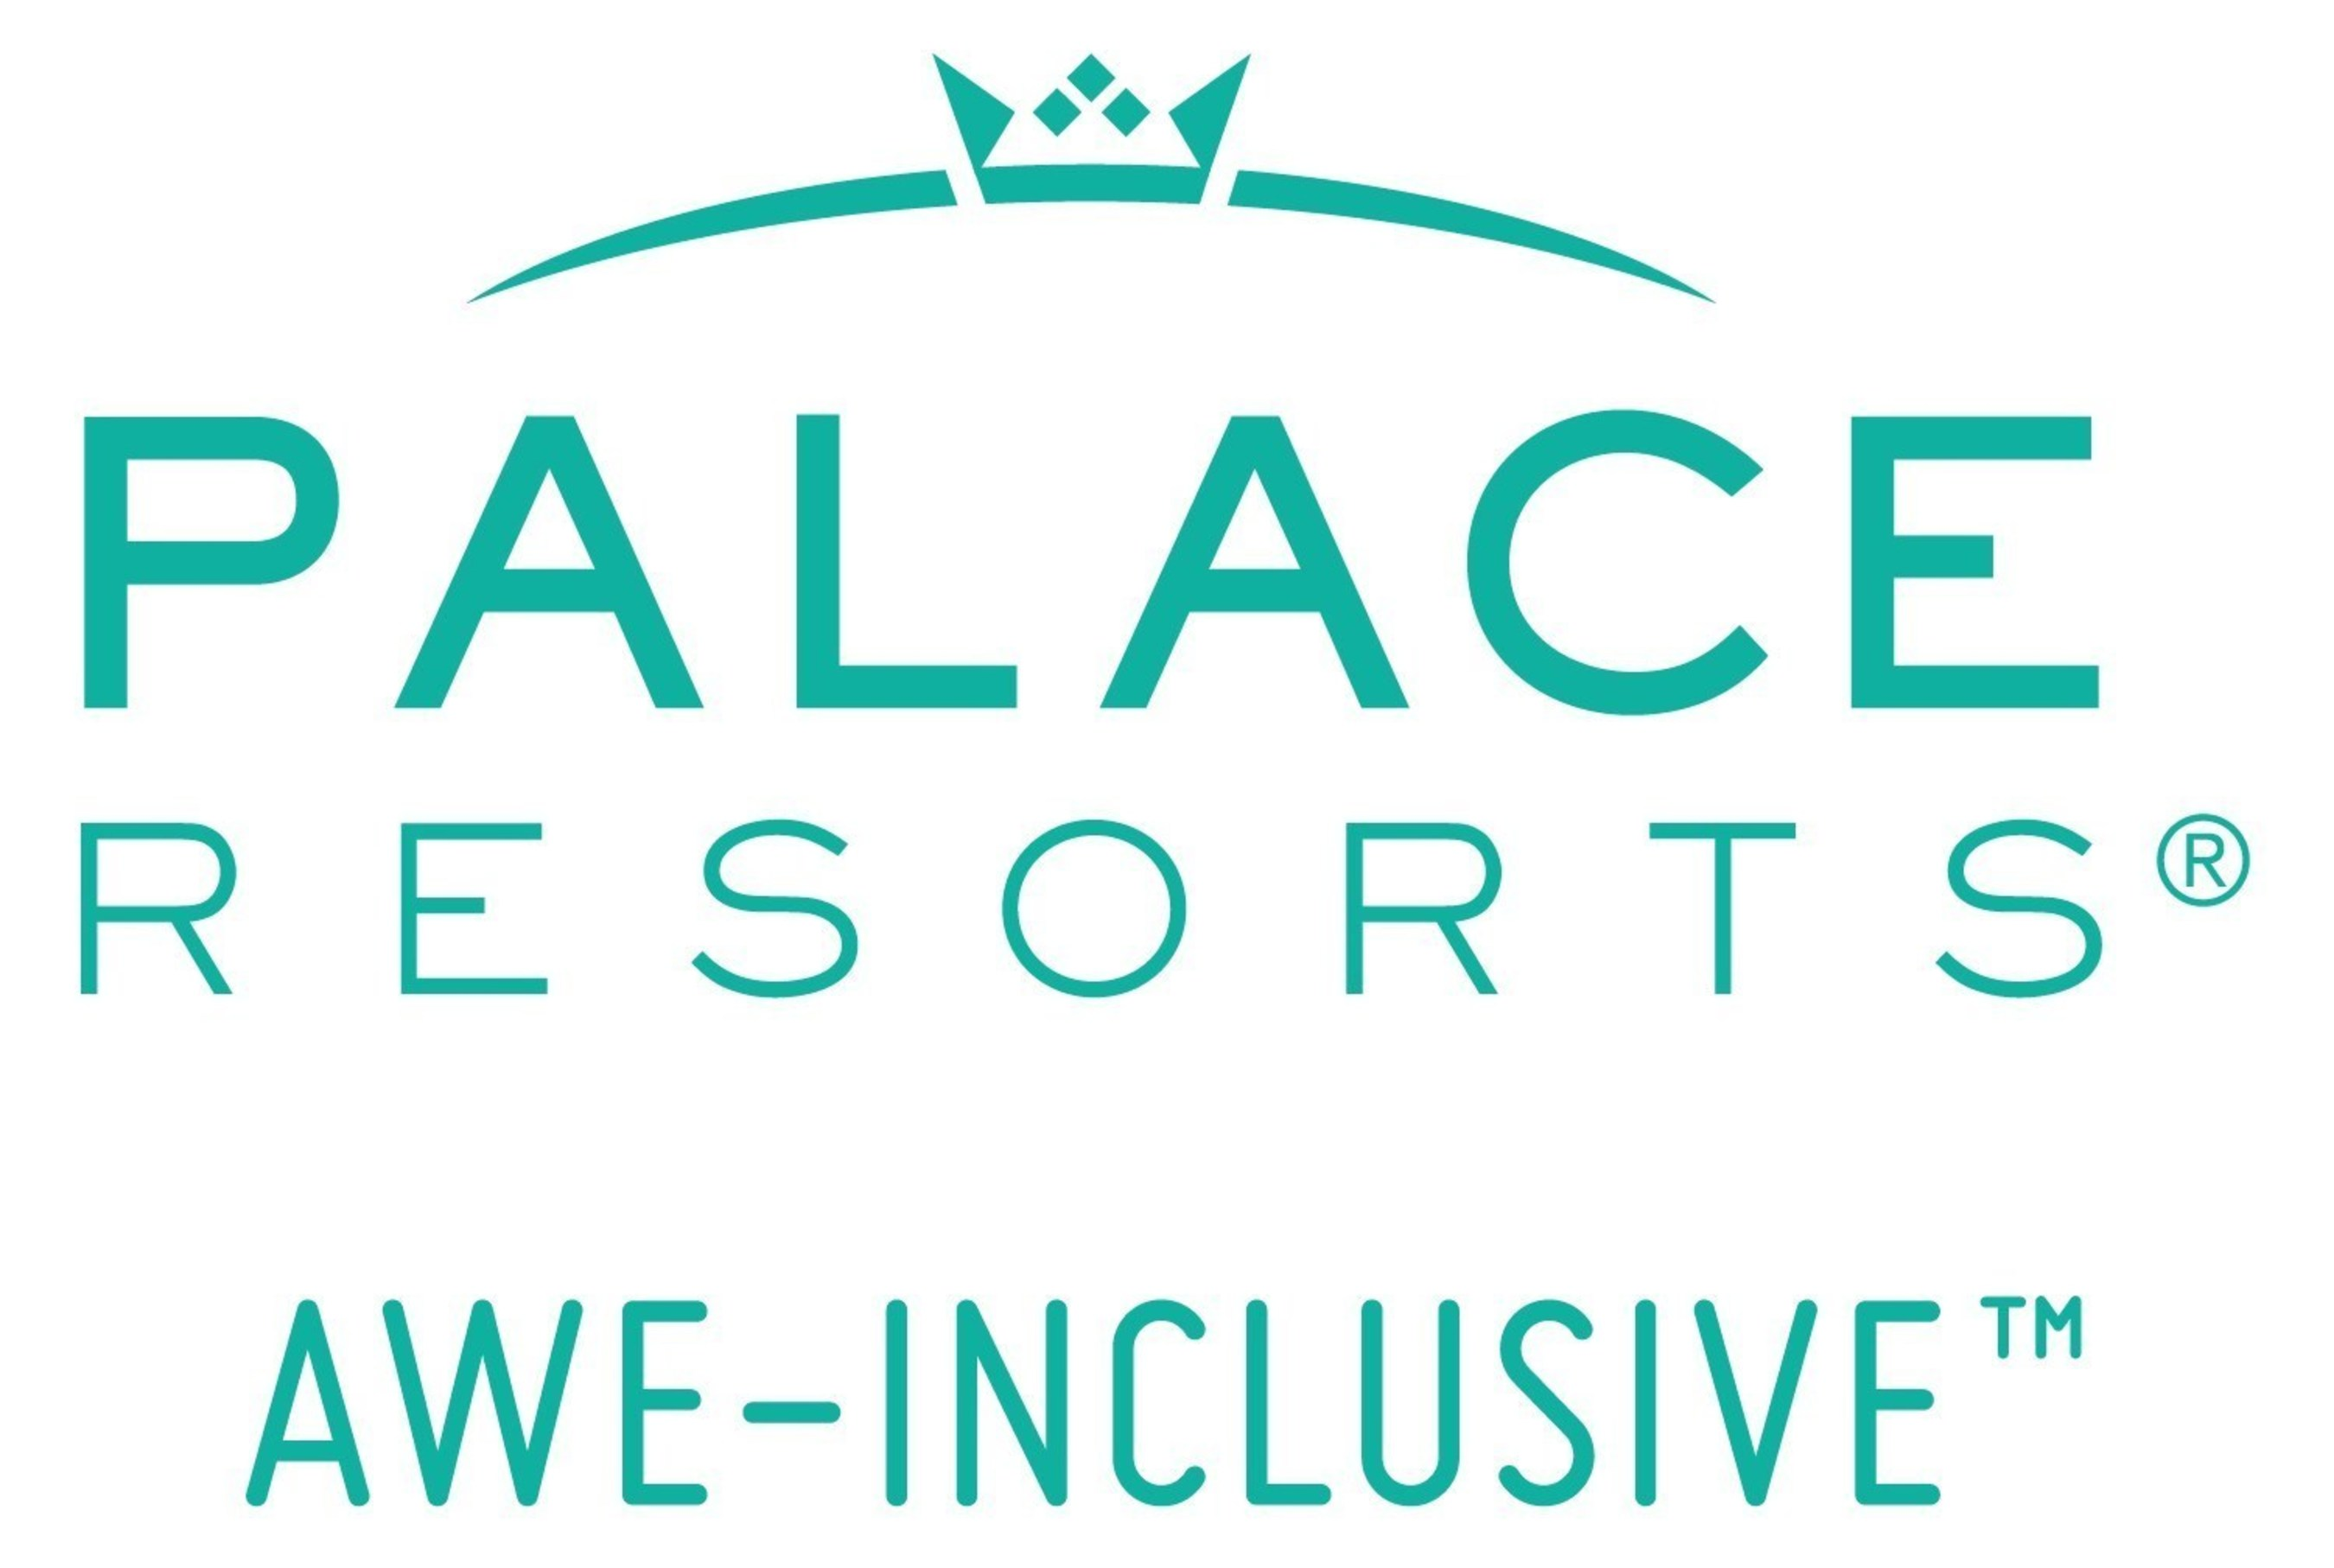 Palace Resort in Cancun, Mexico